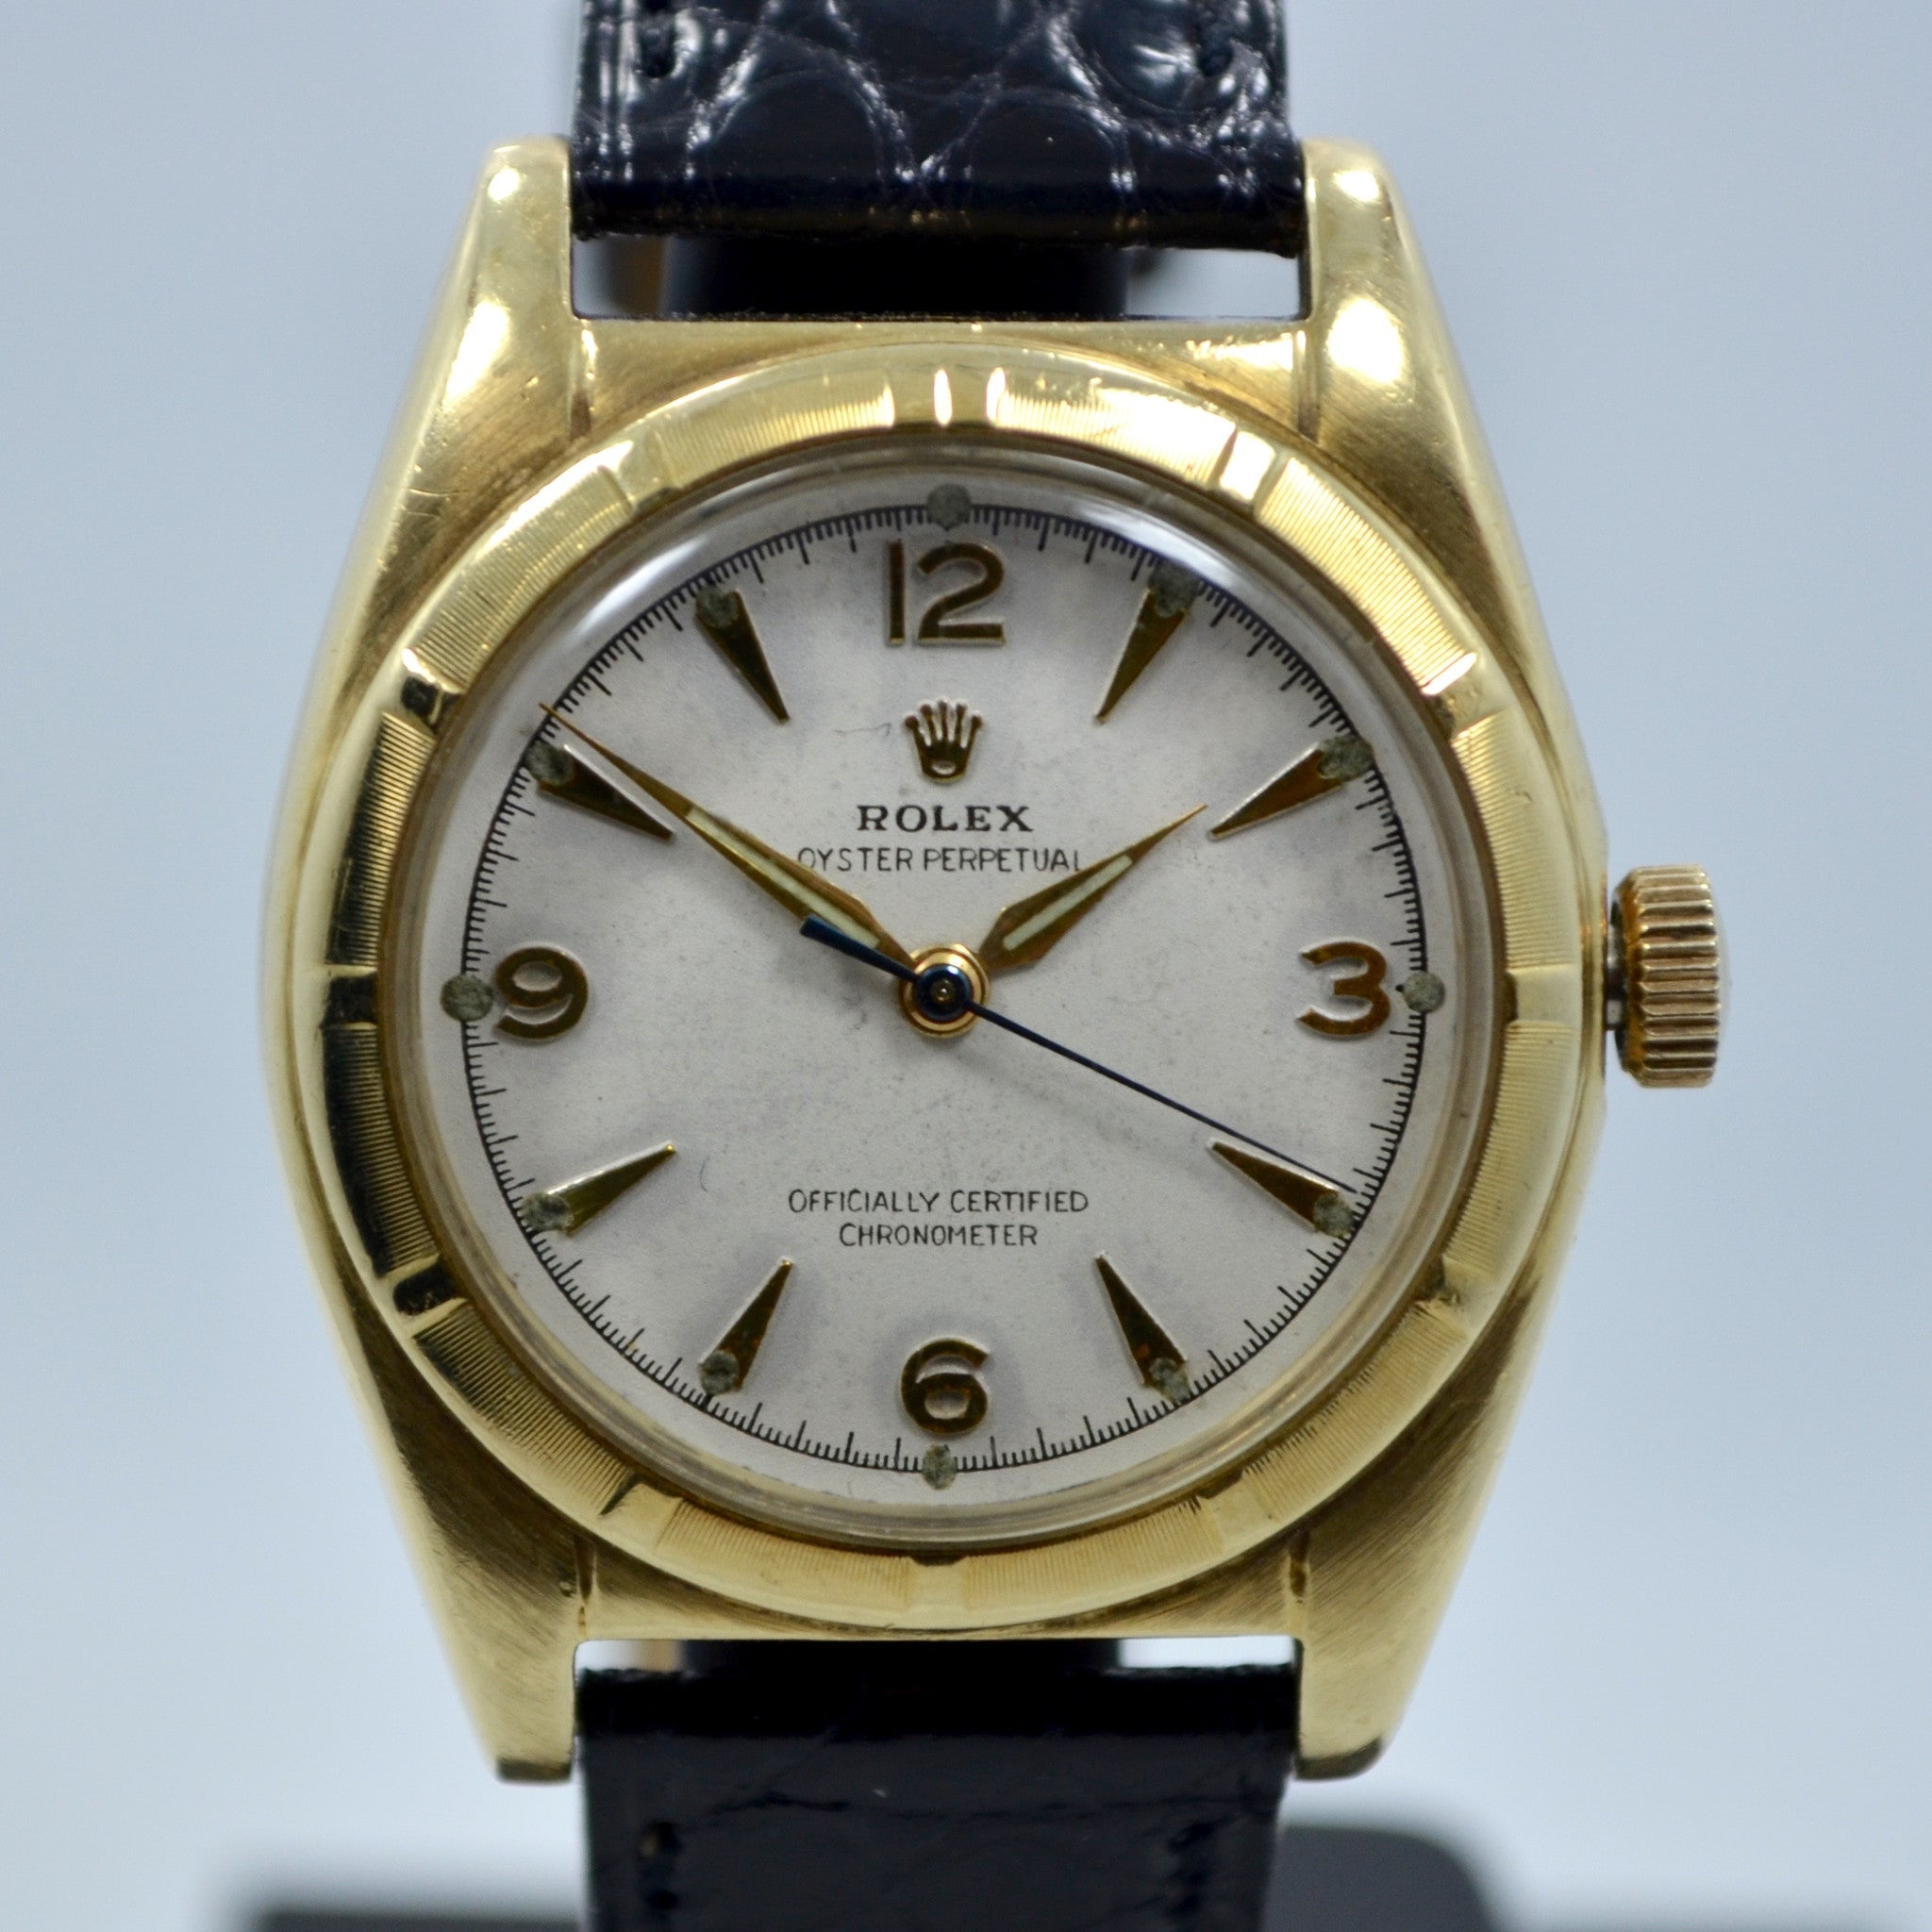 Vintage Rolex Bubbleback 6011 14K Solid Yellow Gold Steel Automatic Watch - Hashtag Watch Company